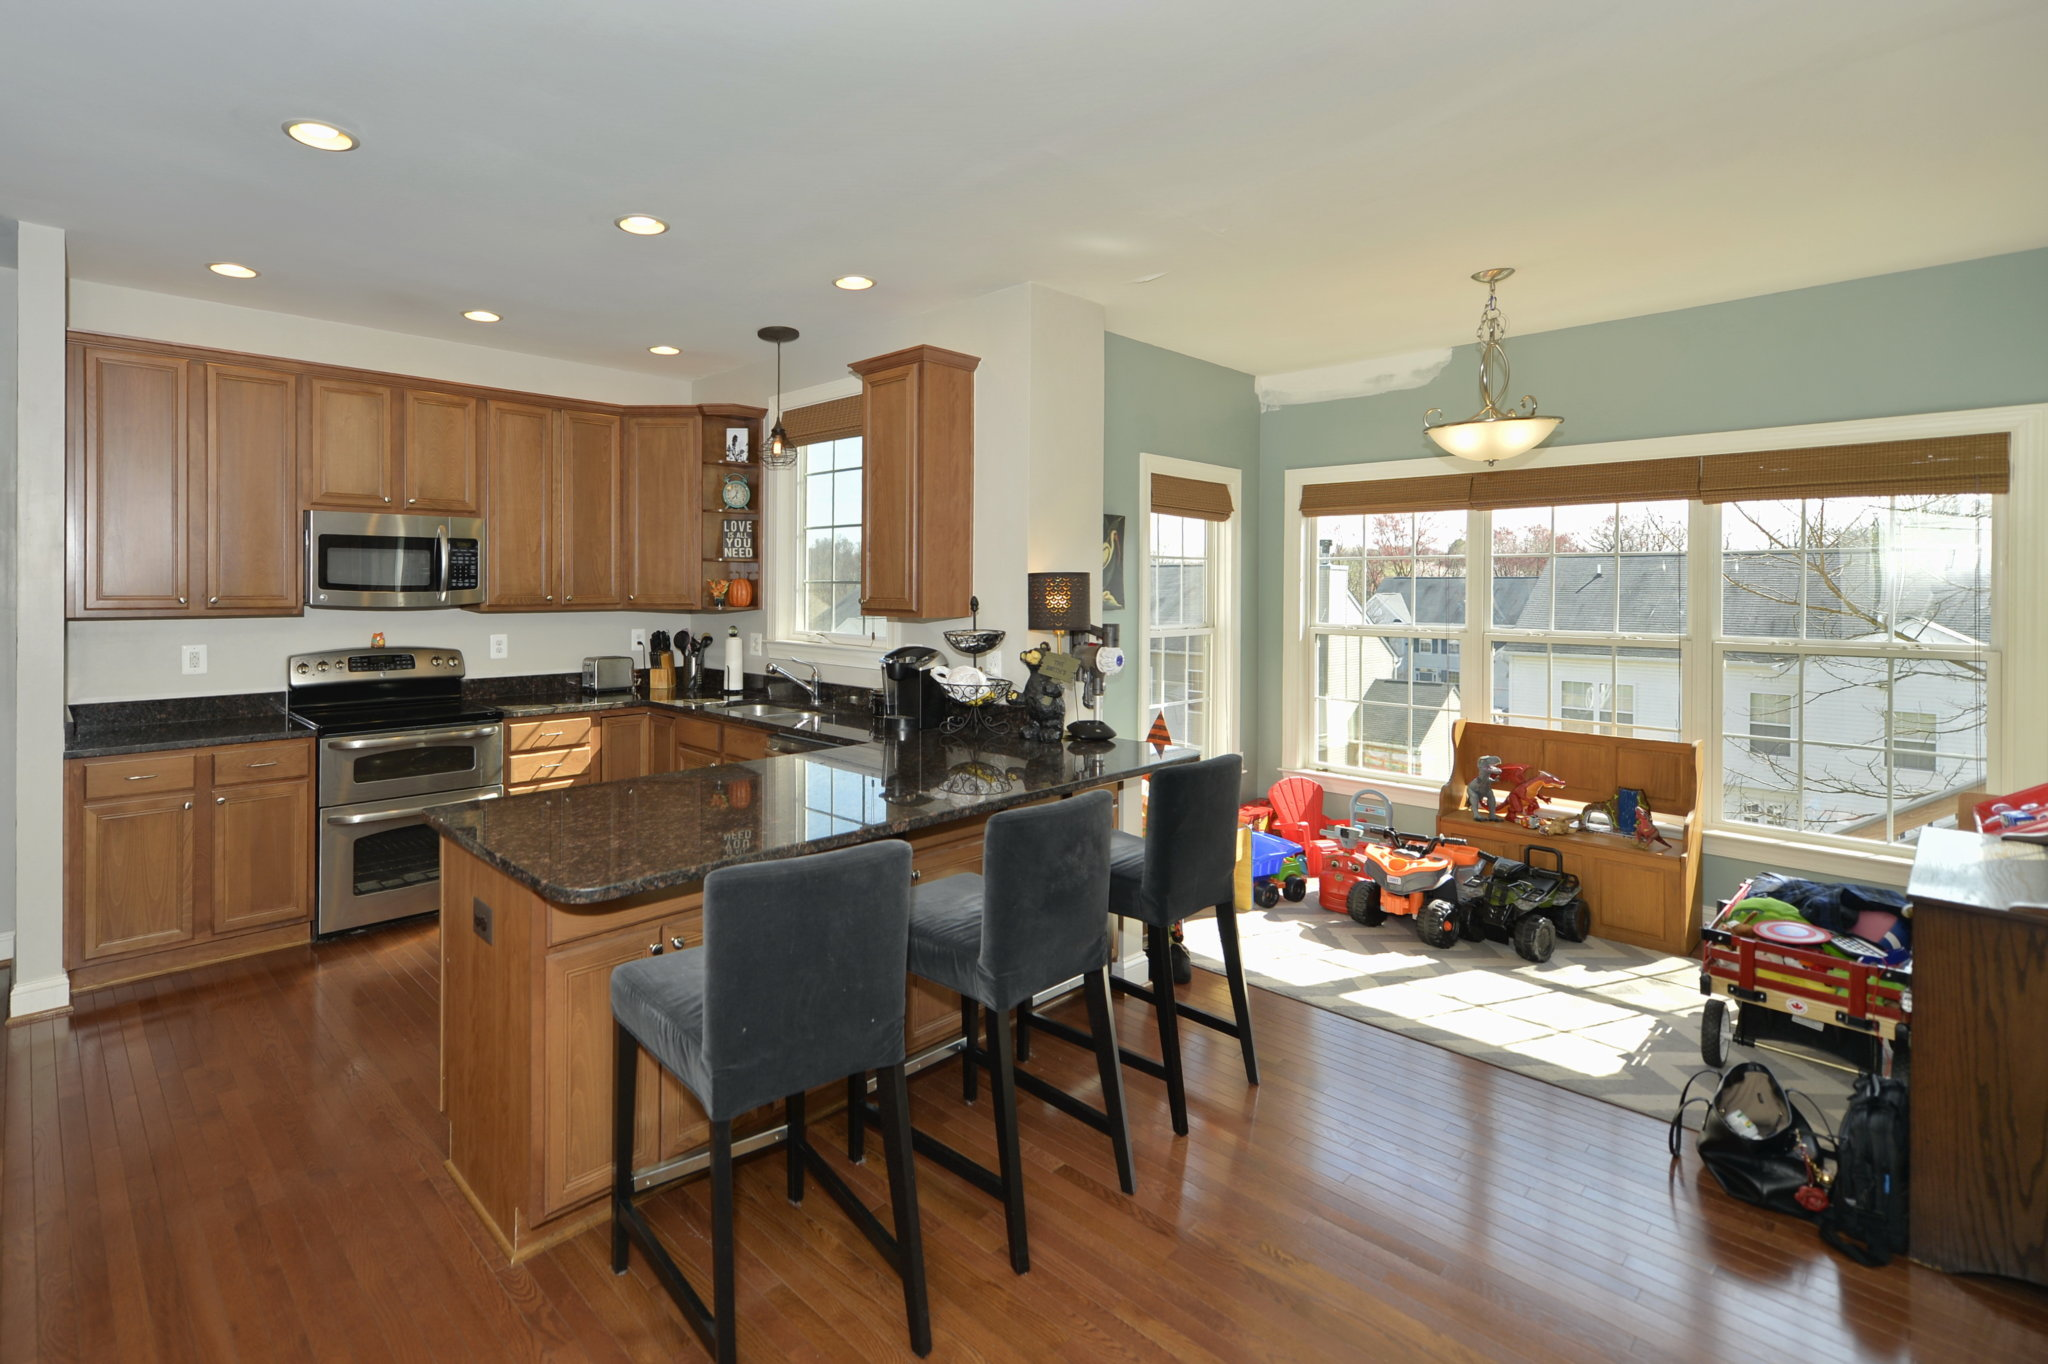 A picture of the kitchen at 17662 Cleveland Park Drive in Round Hill, Virginia